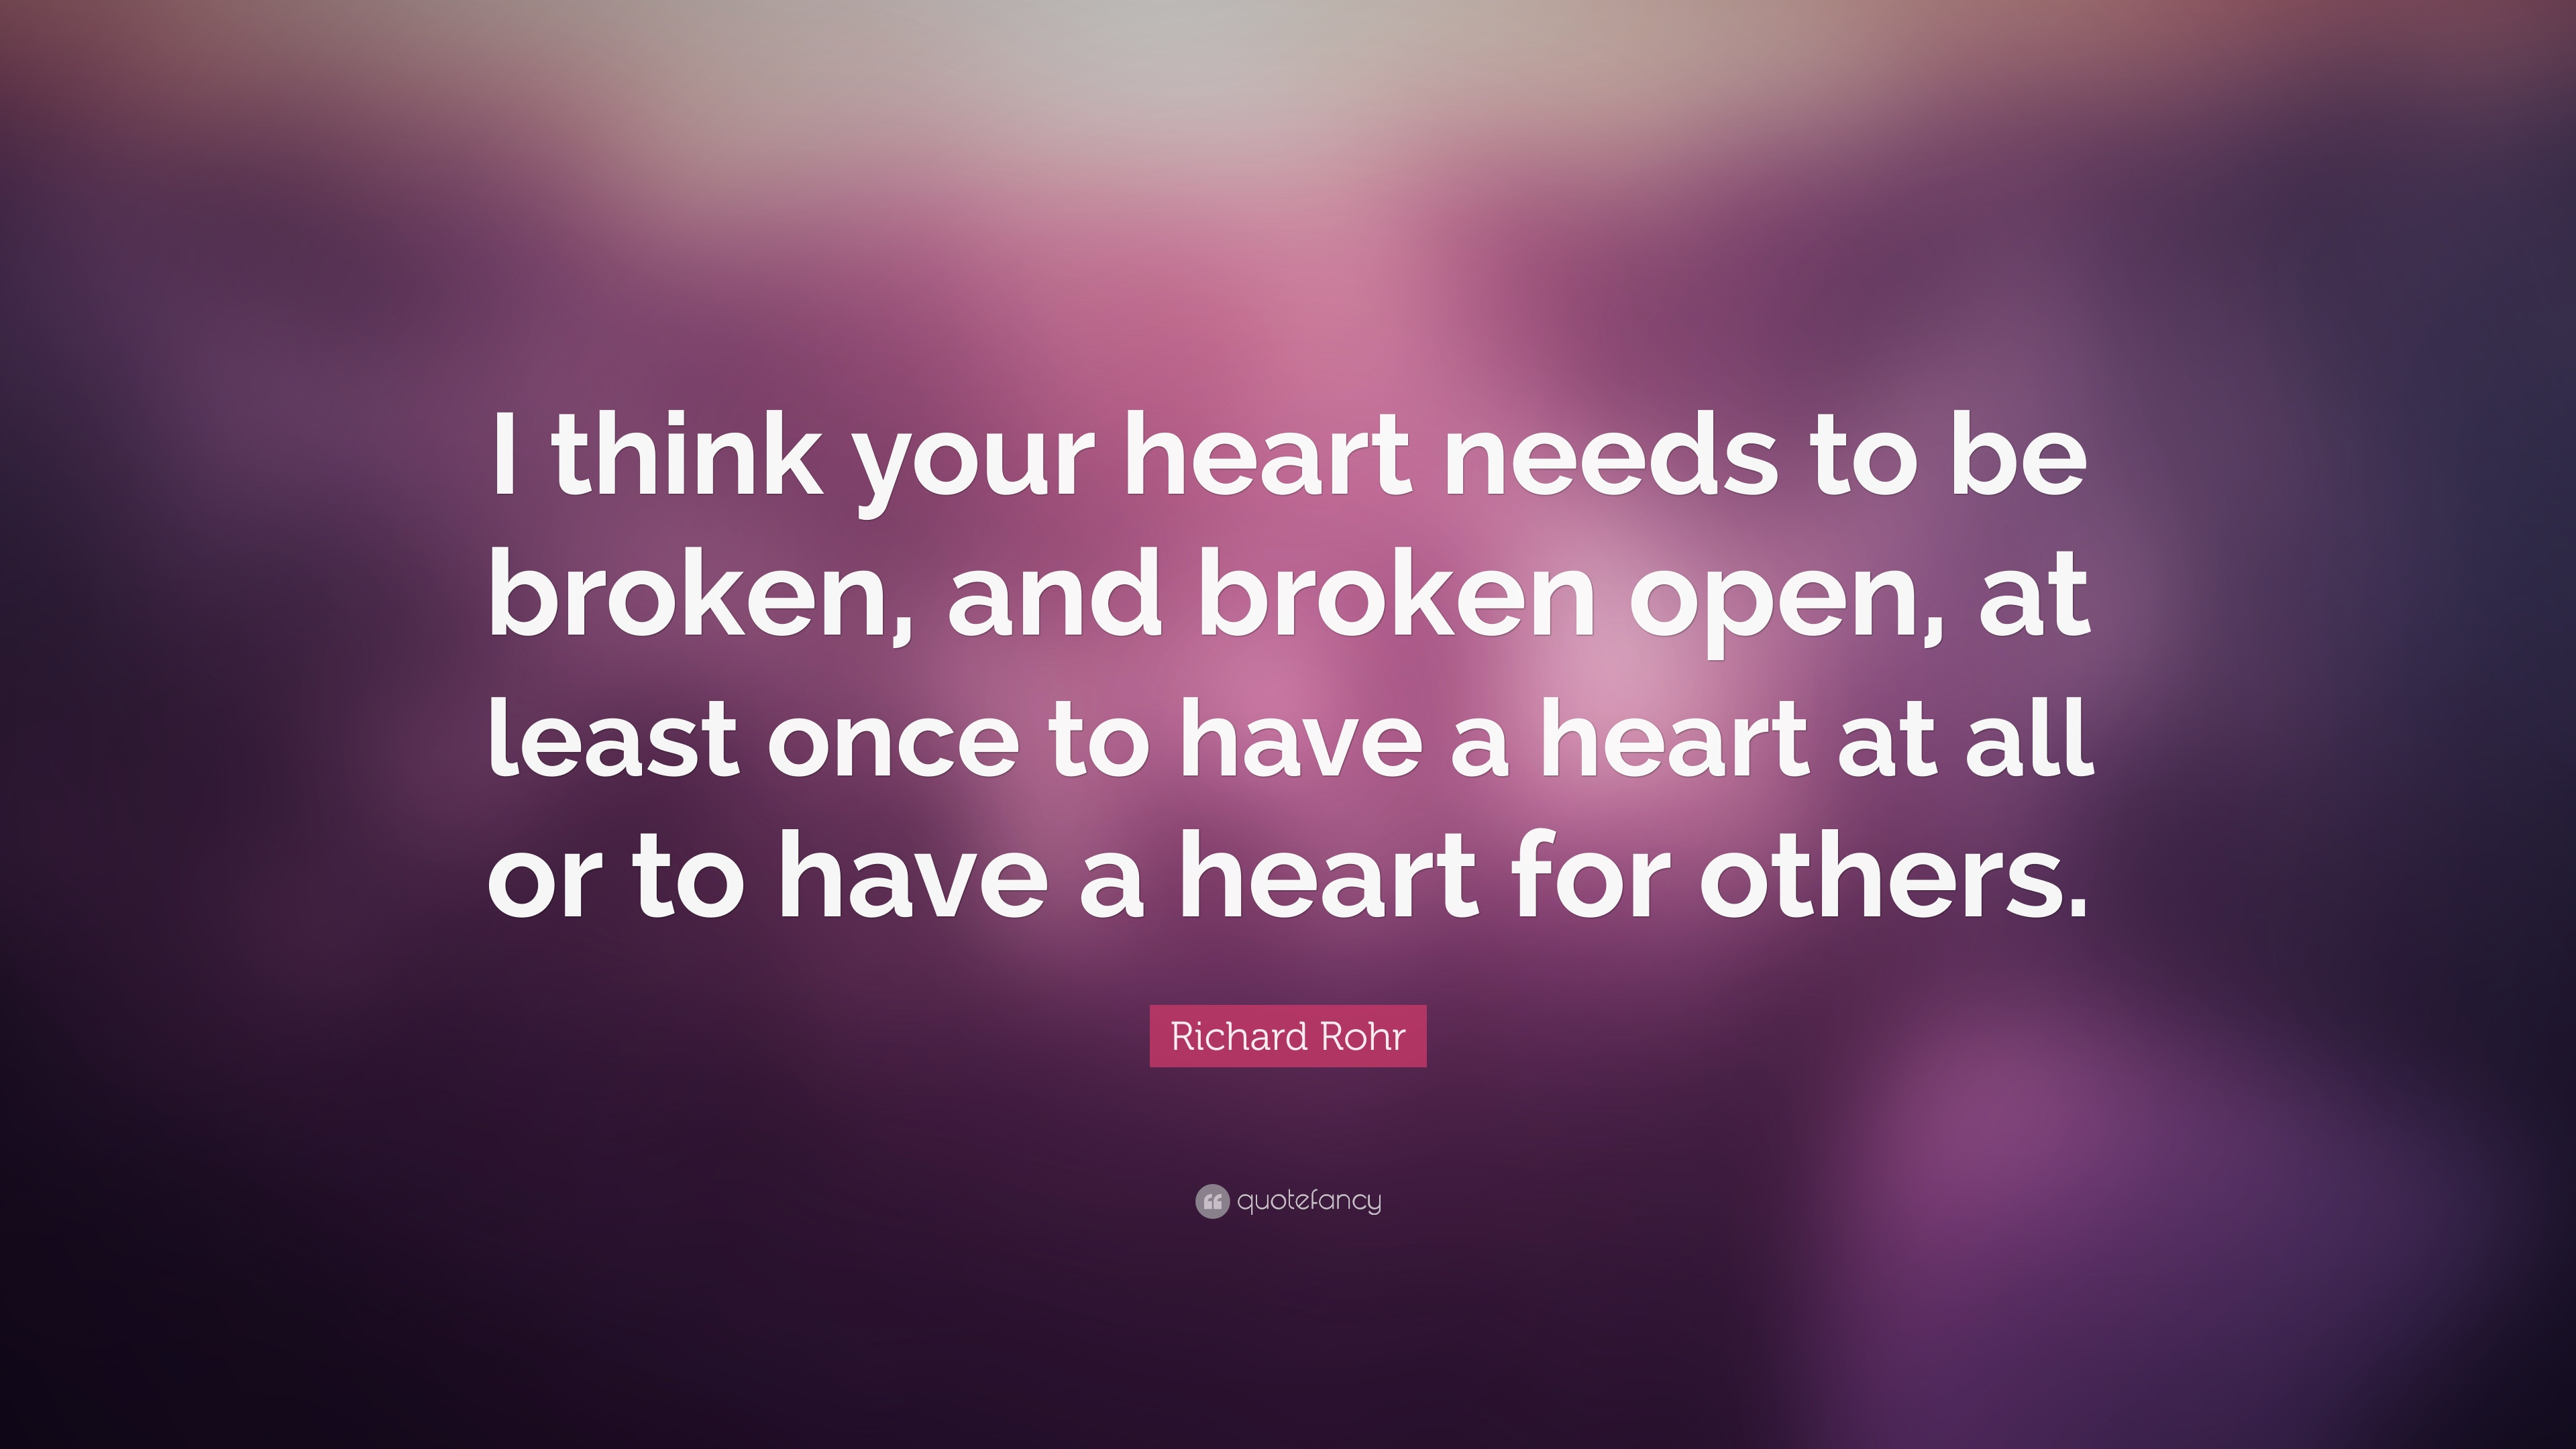 Richard Rohr Quotes | Richard Rohr Quote I Think Your Heart Needs To Be Broken And